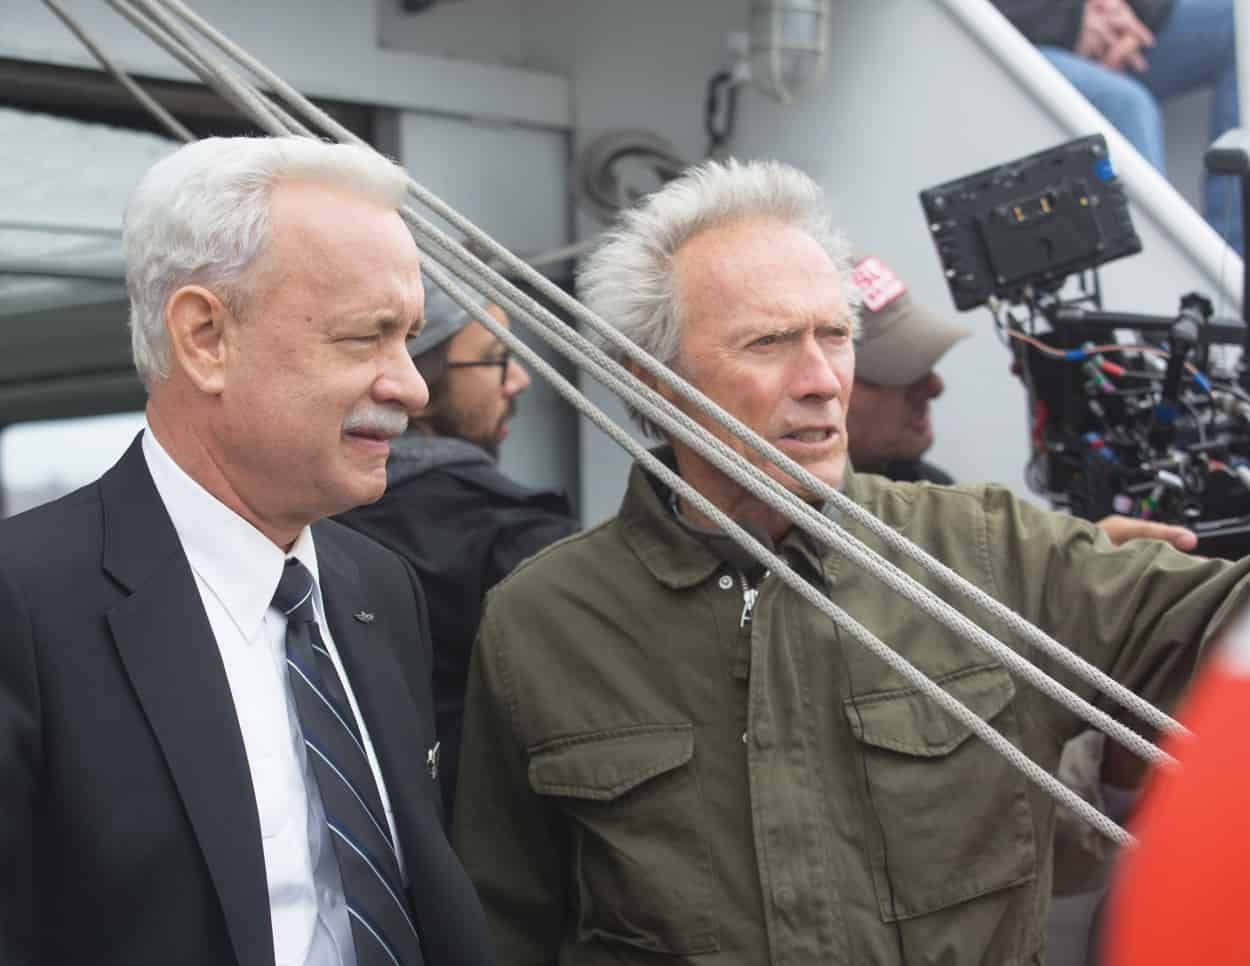 (L-R) Tom Hanks with director/producer, Clint Eastwood on the set of Warner Bros. Pictures' and Village Roadshow Pictures' drama SULLY, a Warner Bros. Pictures release. Photo by Keith Bernstein